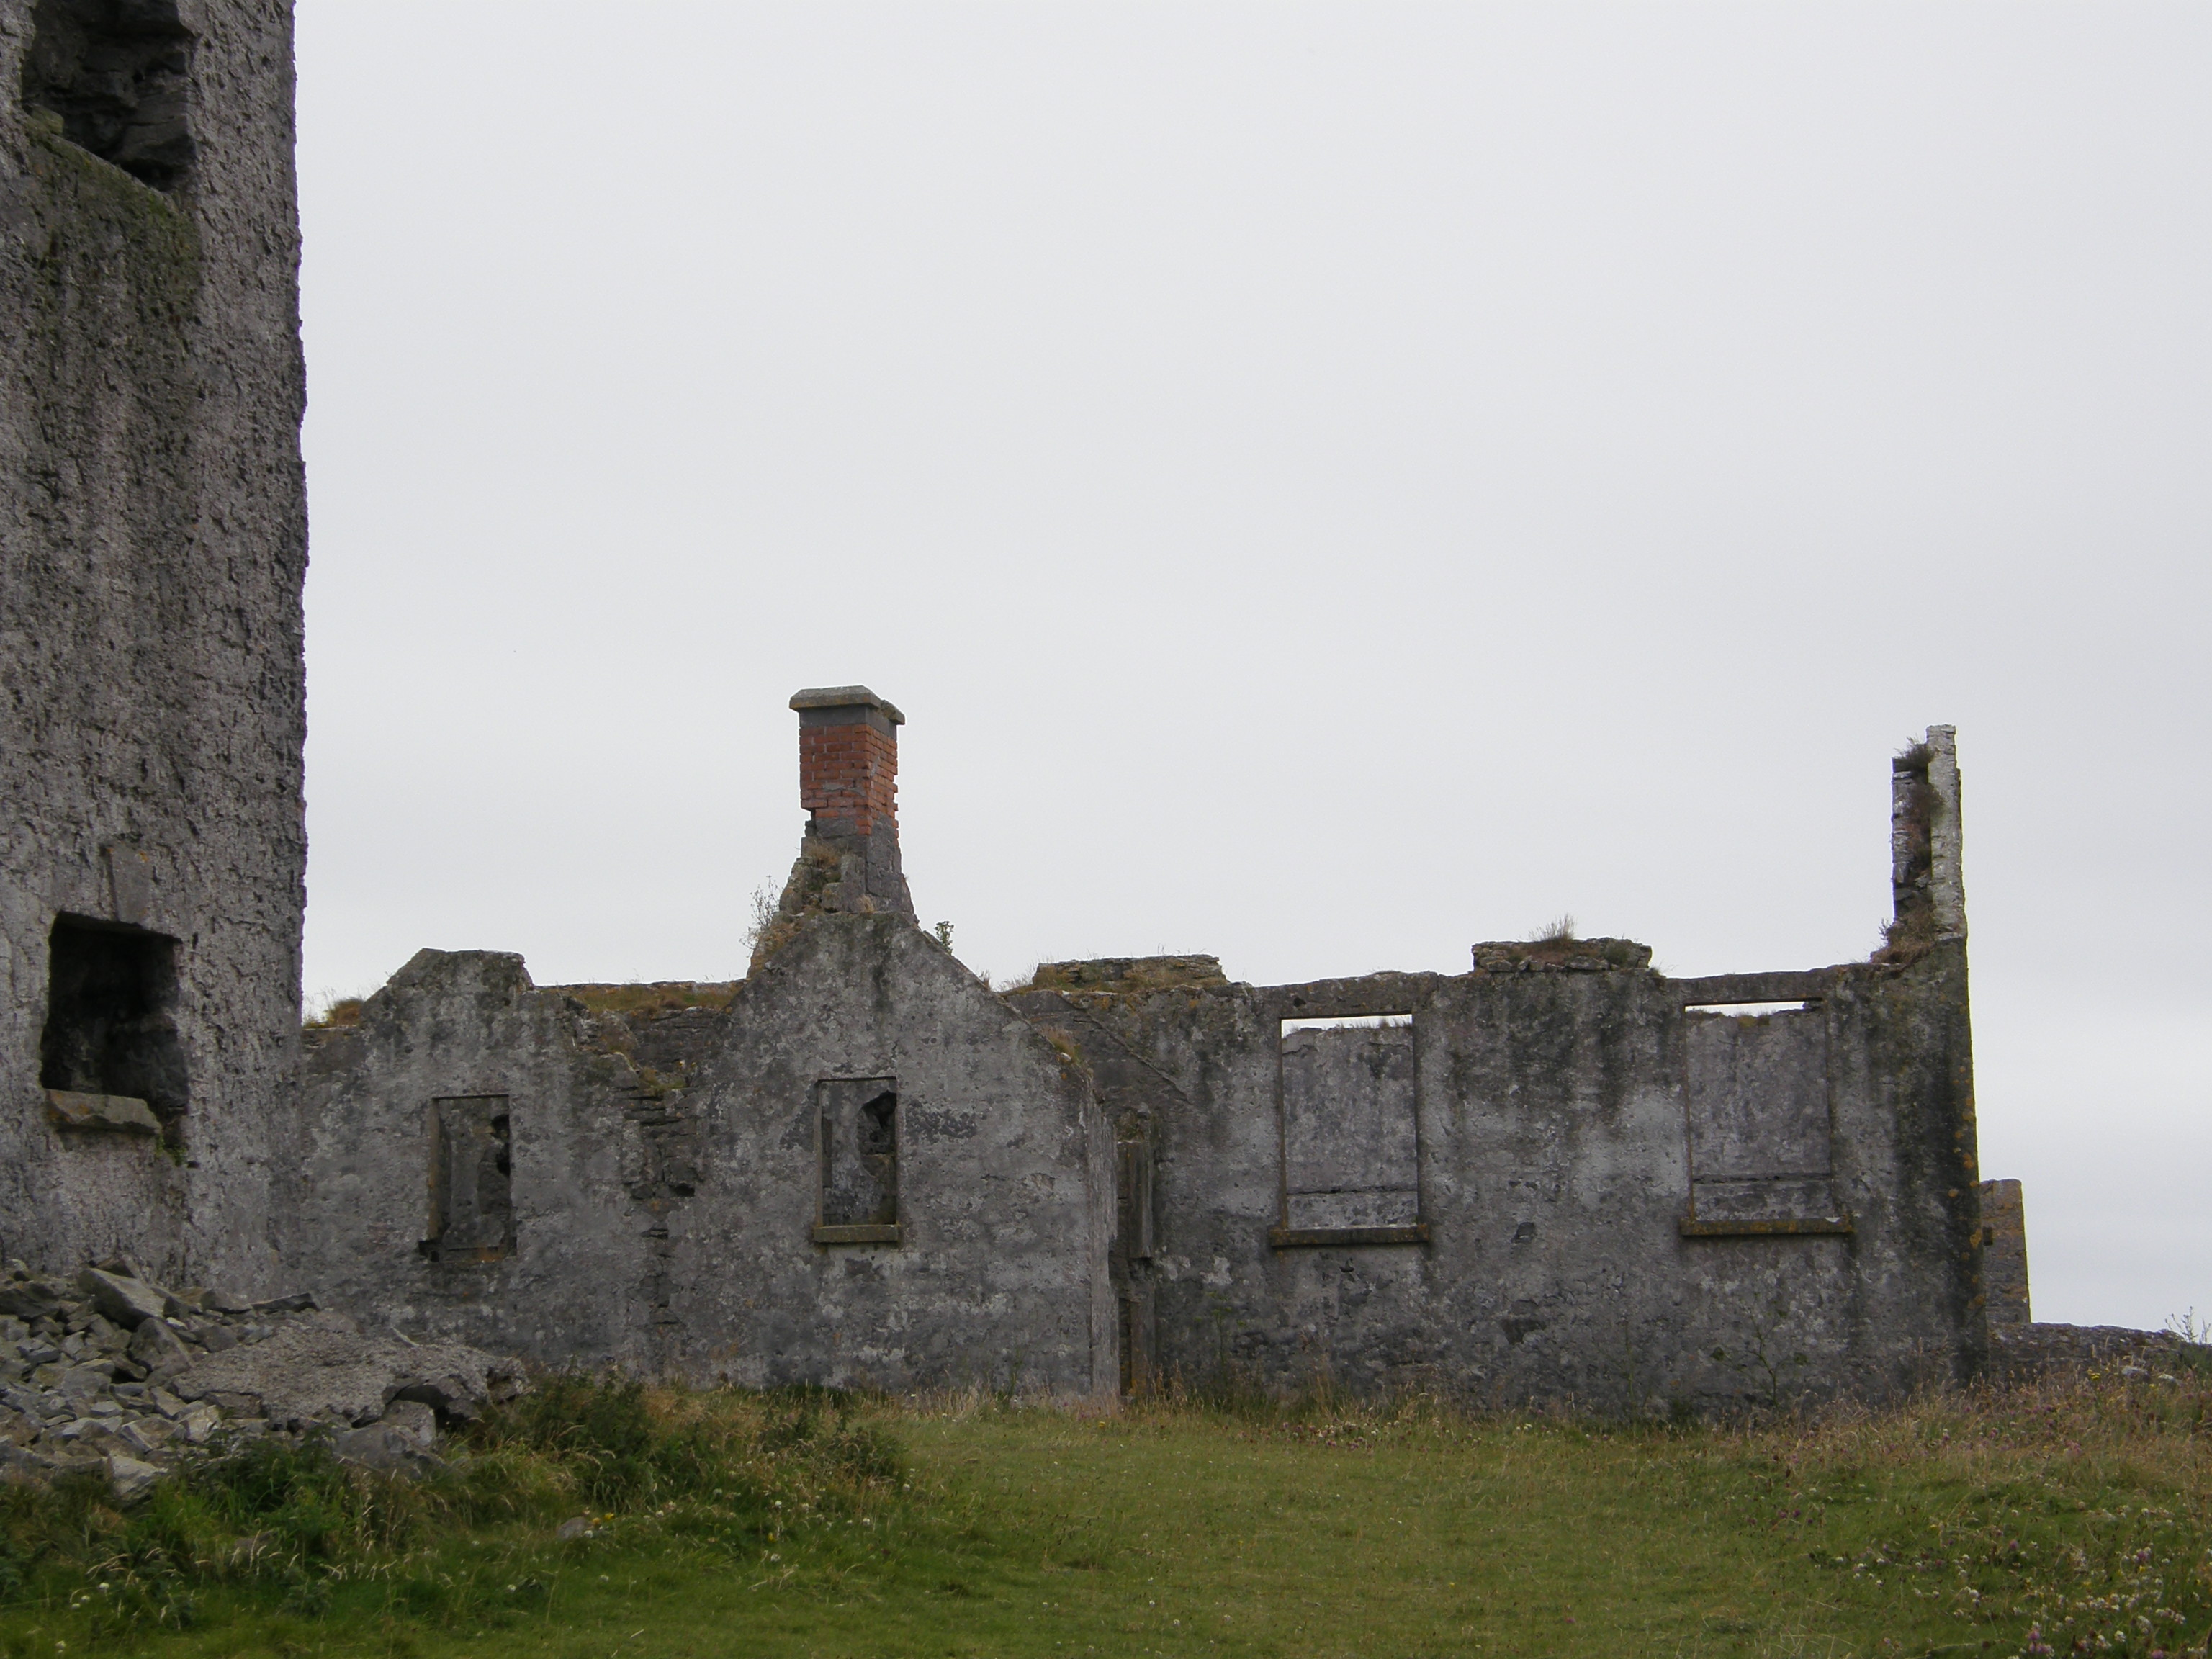 School building constructed next to, and incorporating, watchtower